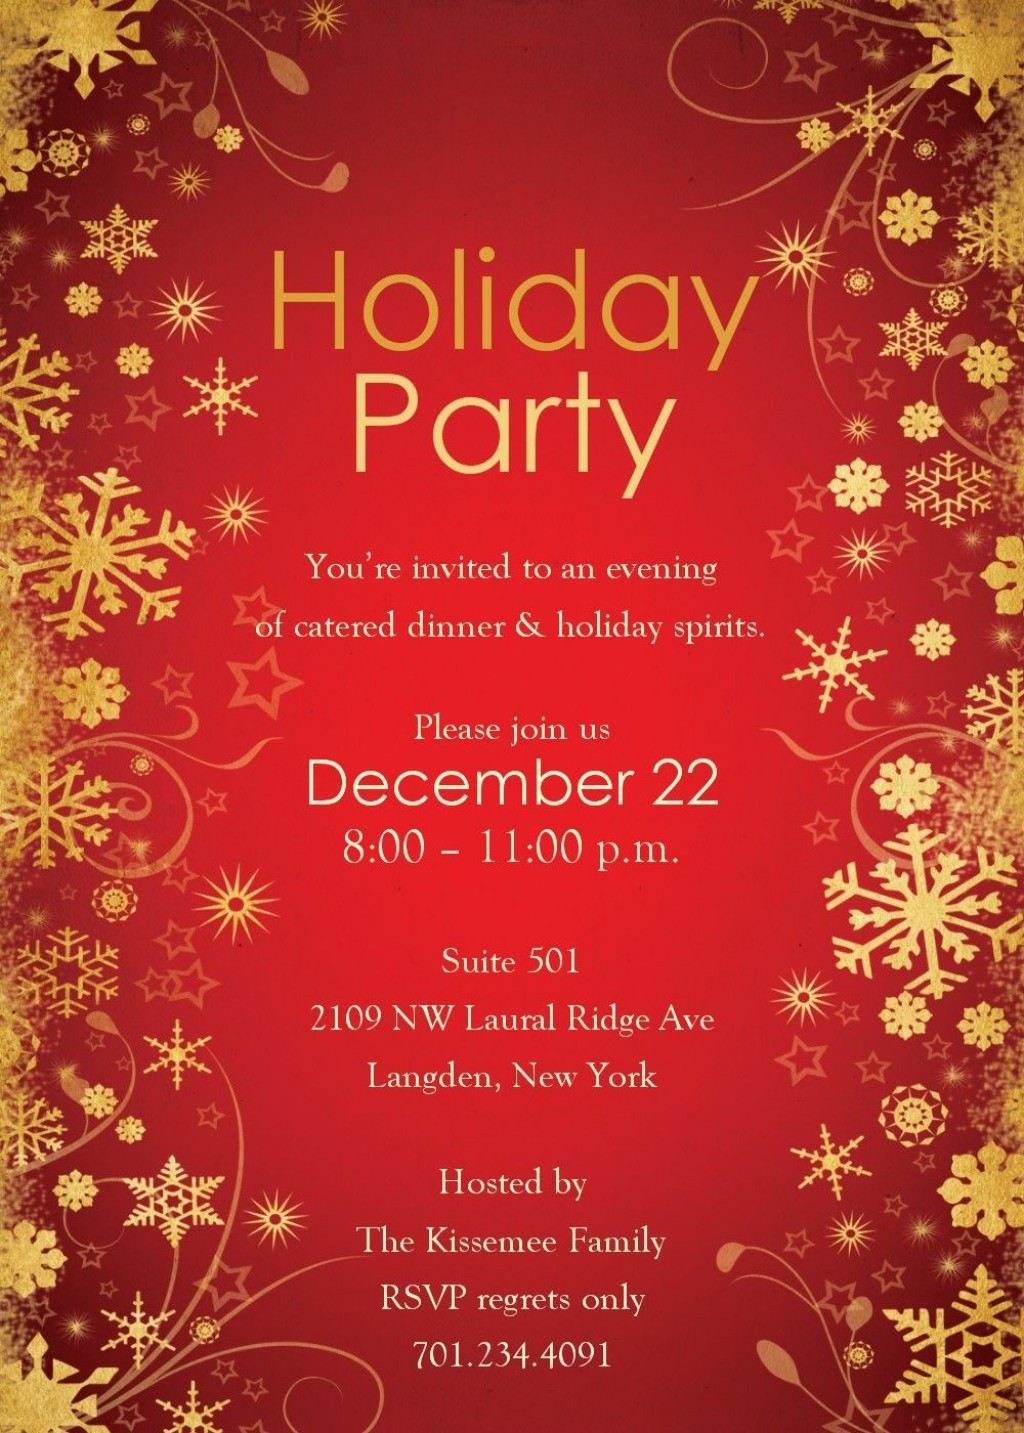 005 Impressive Free Holiday Invite Template Picture  Templates Party Ticket For EmailLarge